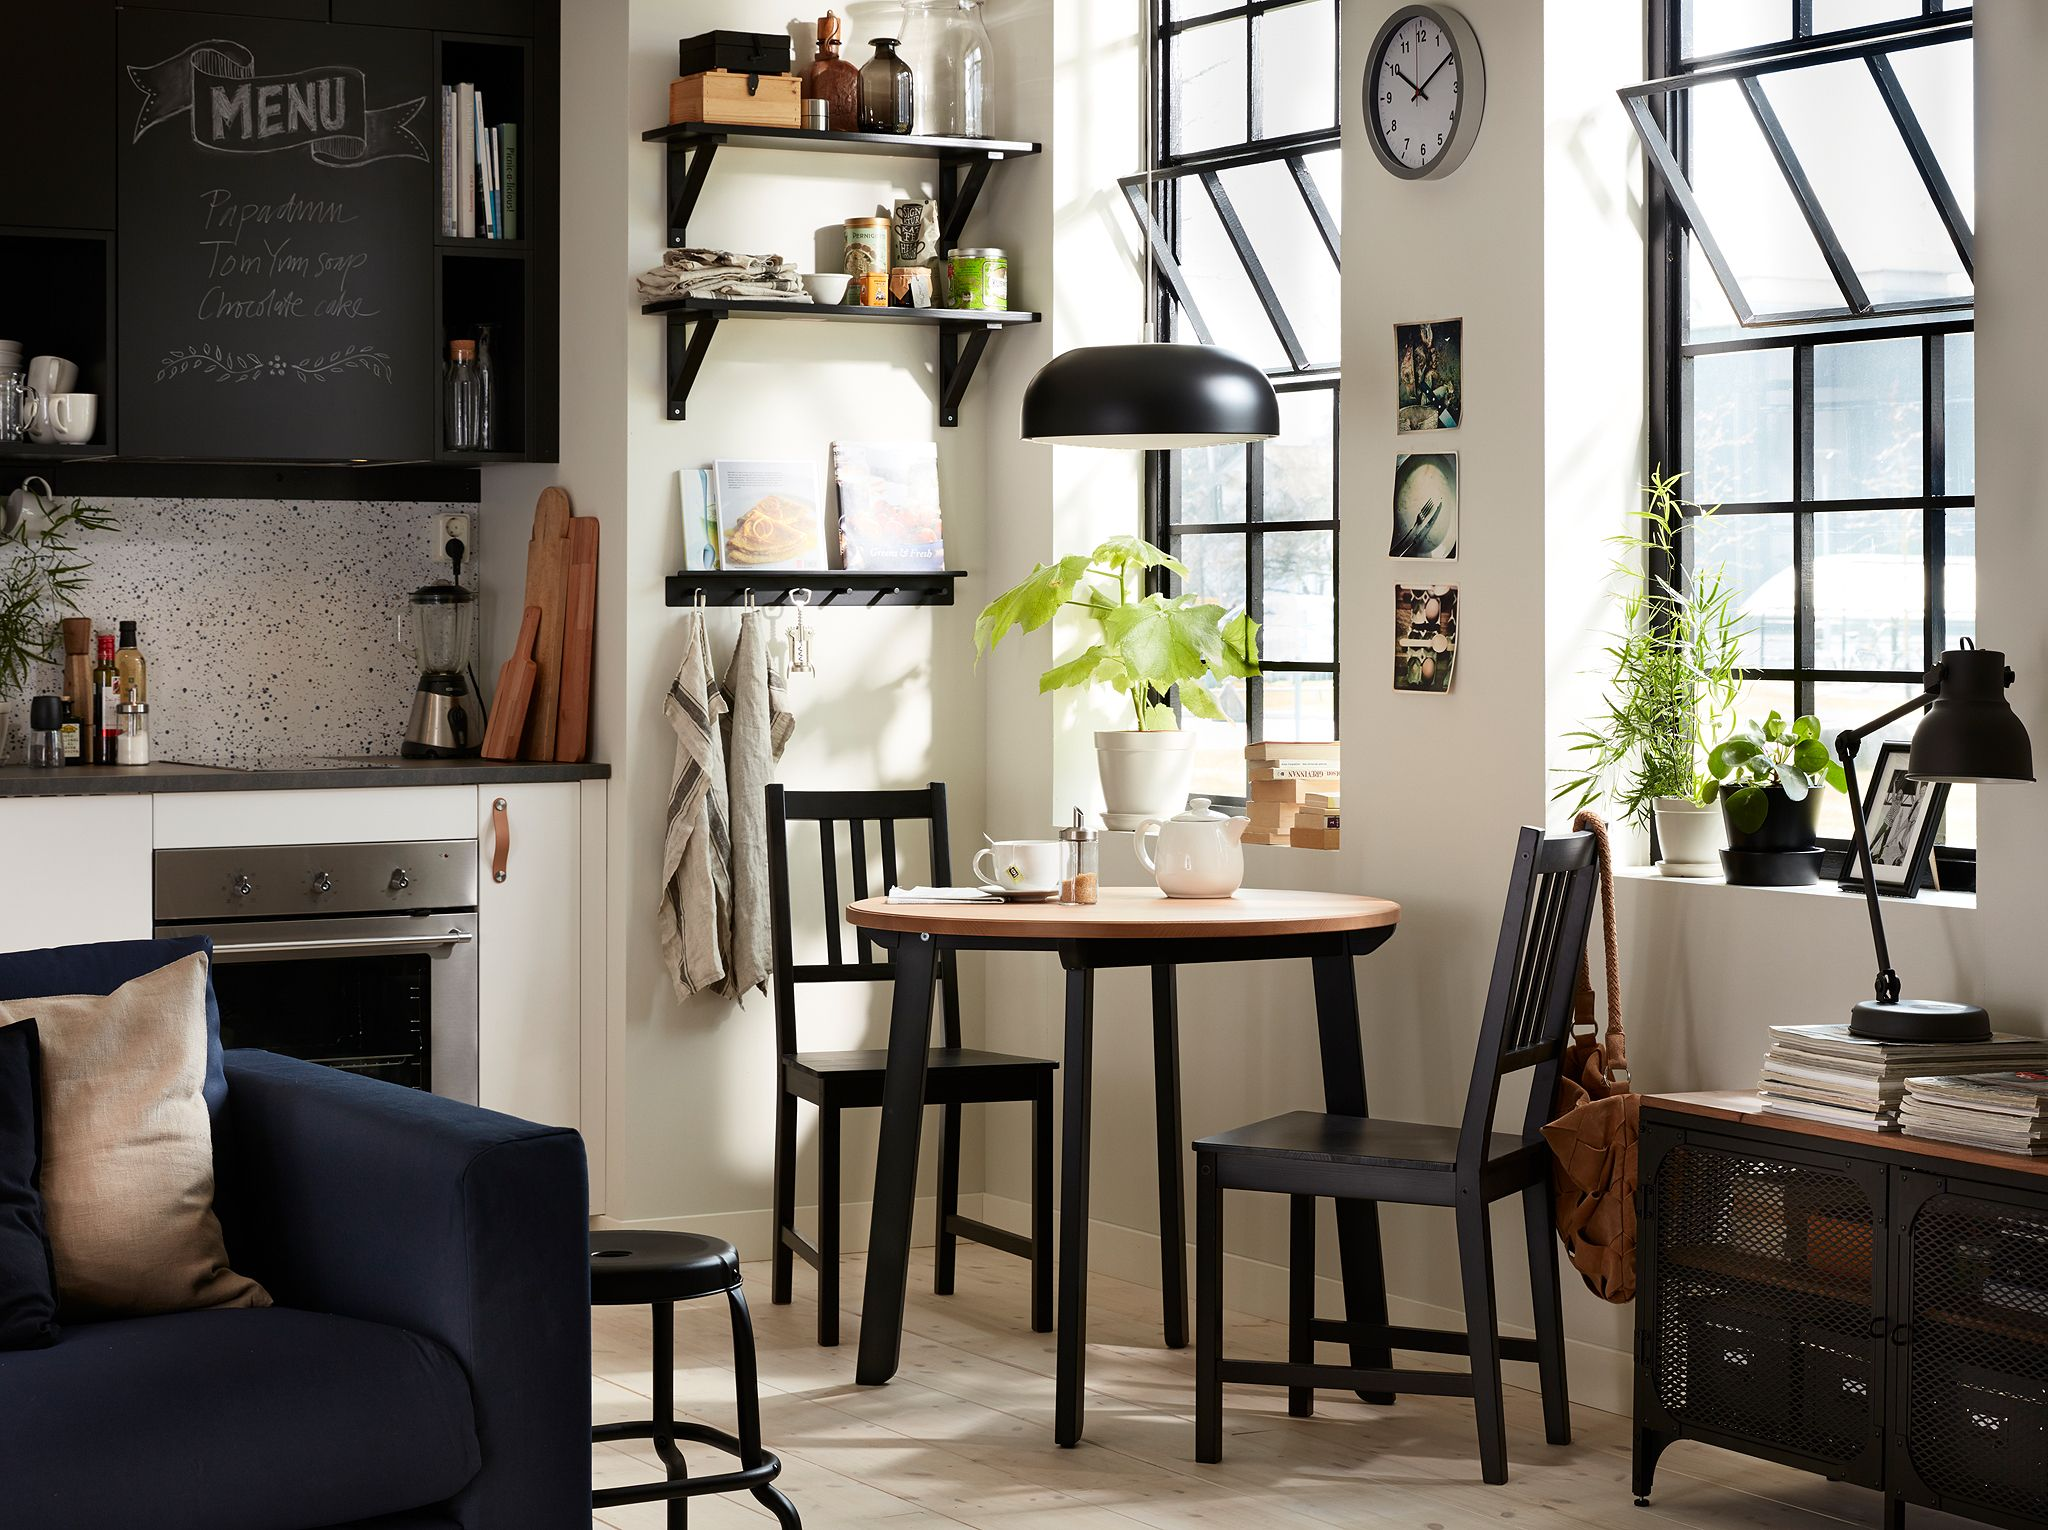 Petite Table Ronde Ikea Image Result For Gamlared Table Ikea Spaces Ikea Dining